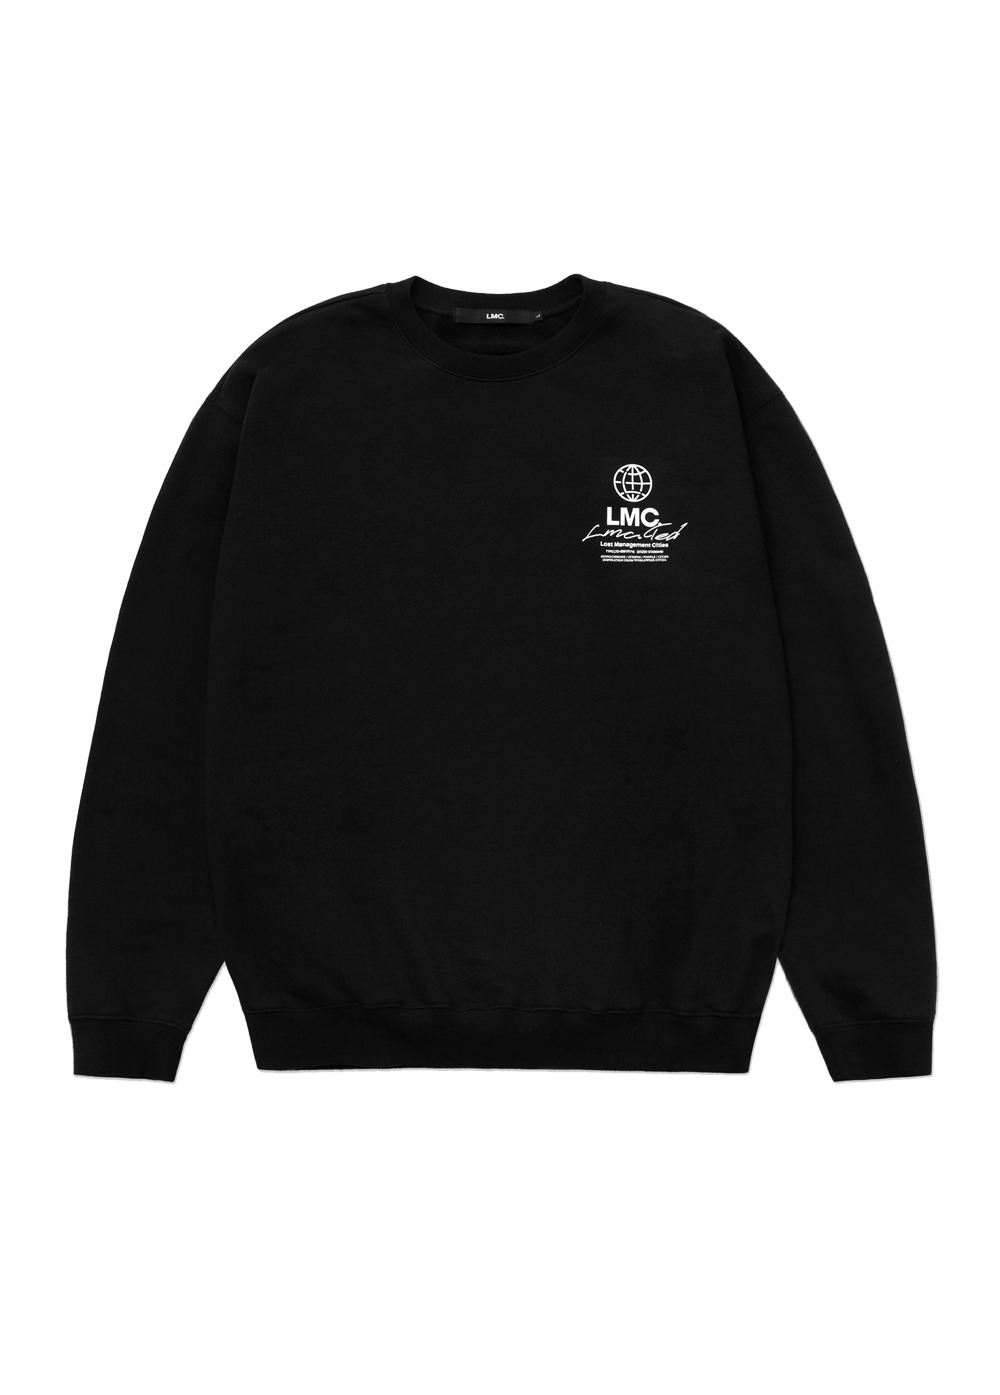 LMC SIGNATURE GLOBE SWEATSHIRT black